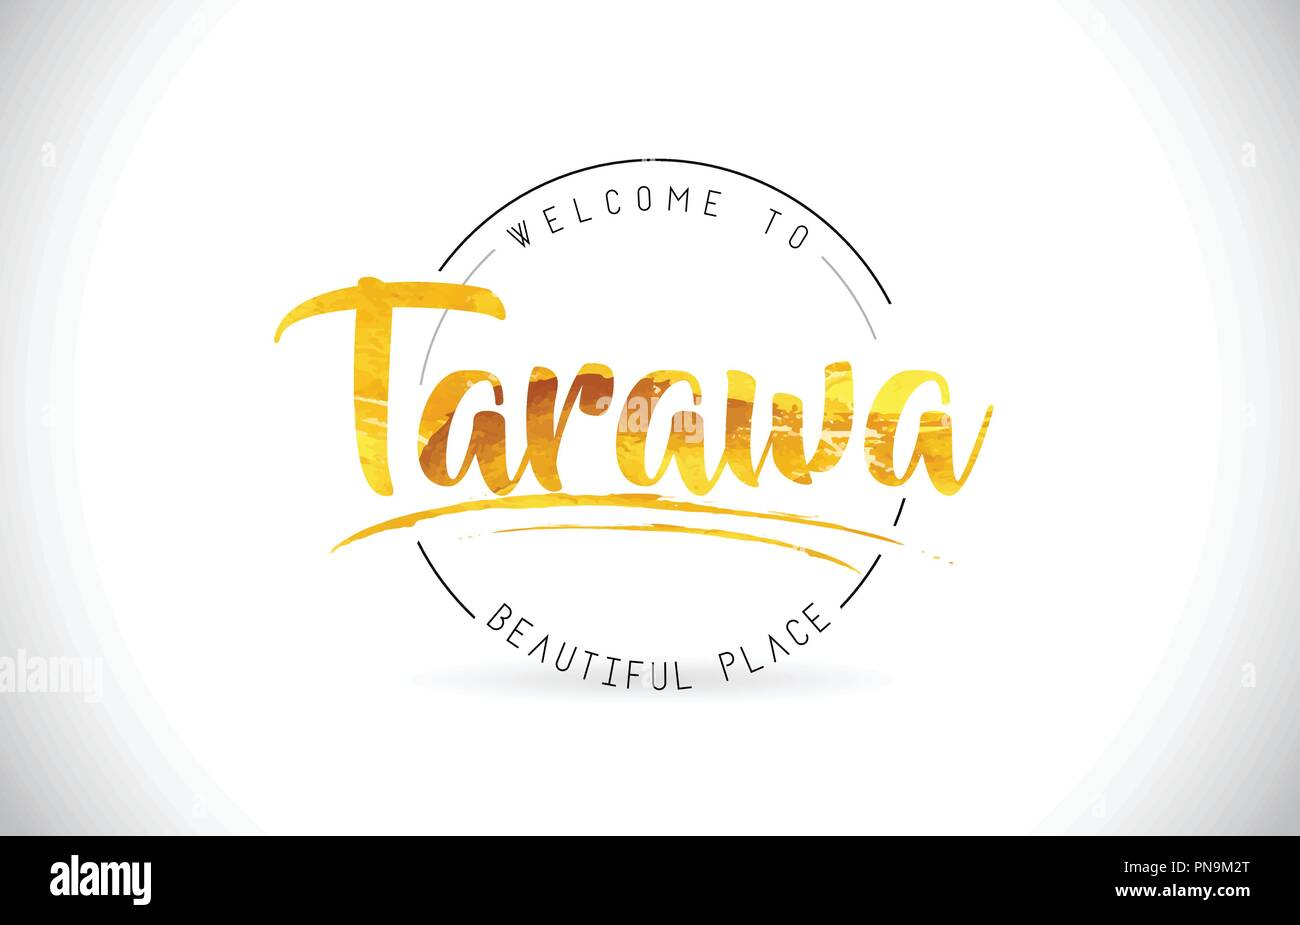 Tarawa Welcome To Word Text with Handwritten Font and Golden Texture Design Illustration Vector. - Stock Image